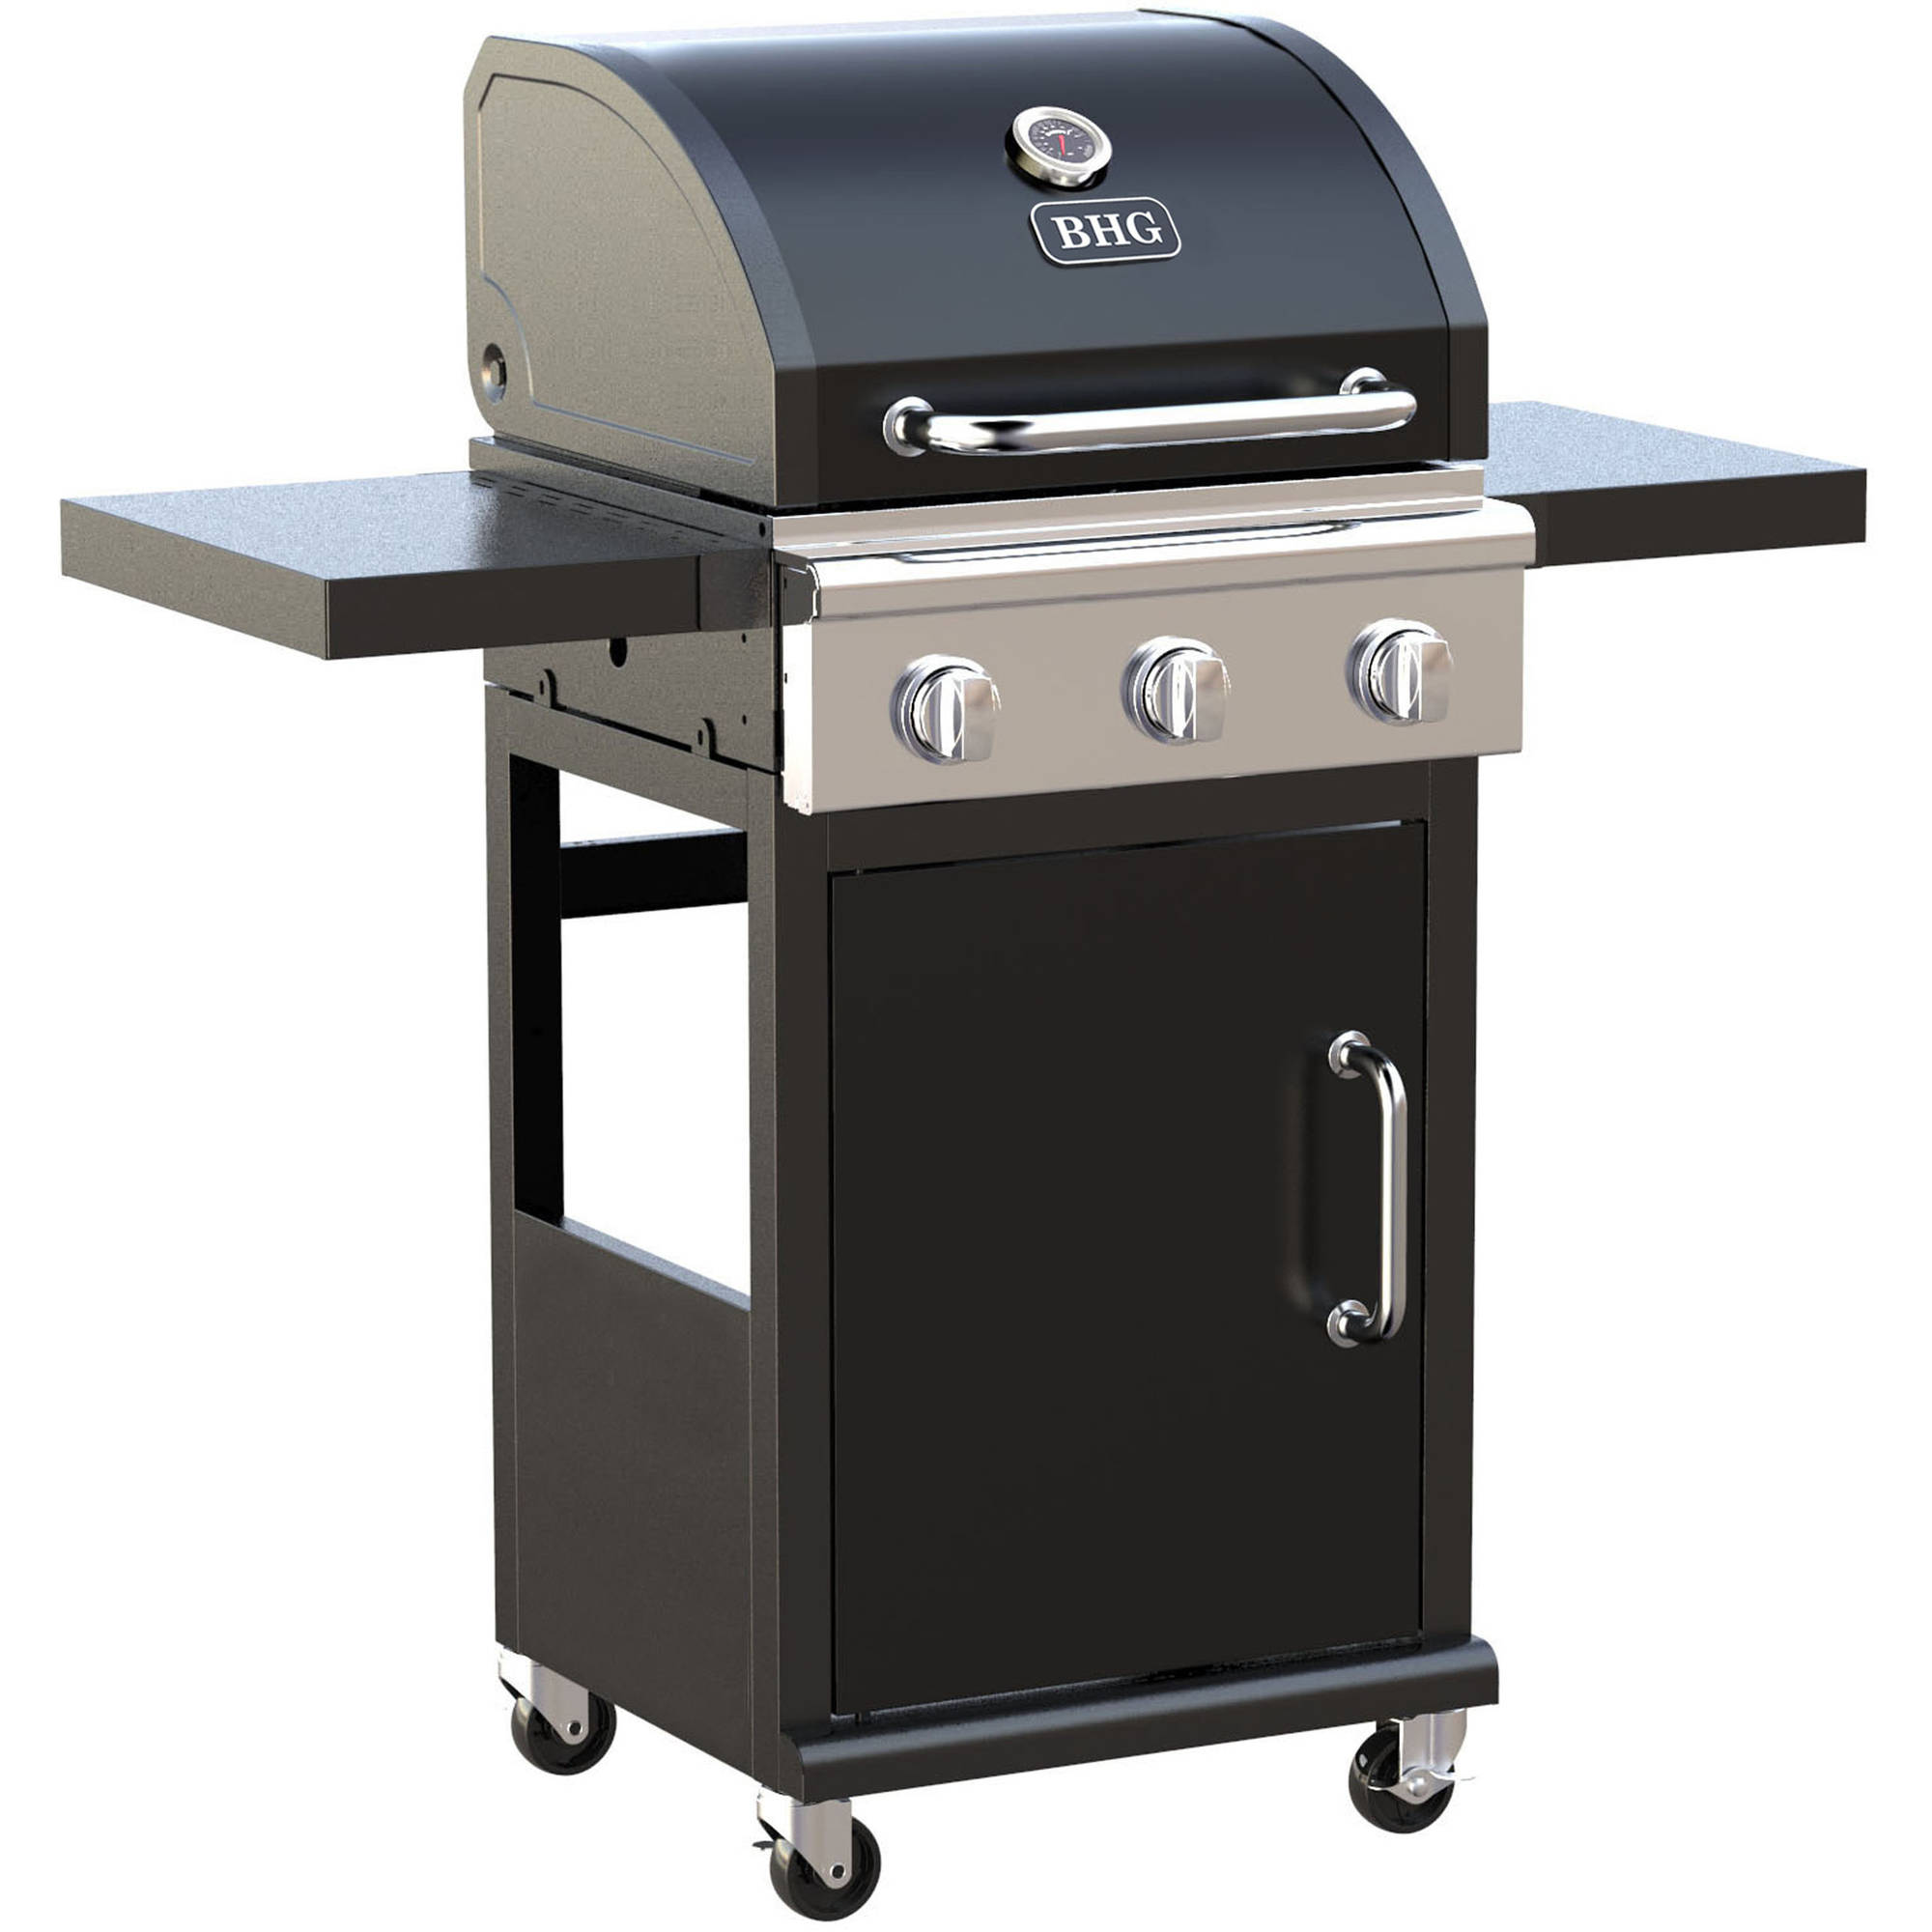 Better Homes and Gardens 3-Burner Gas Grill